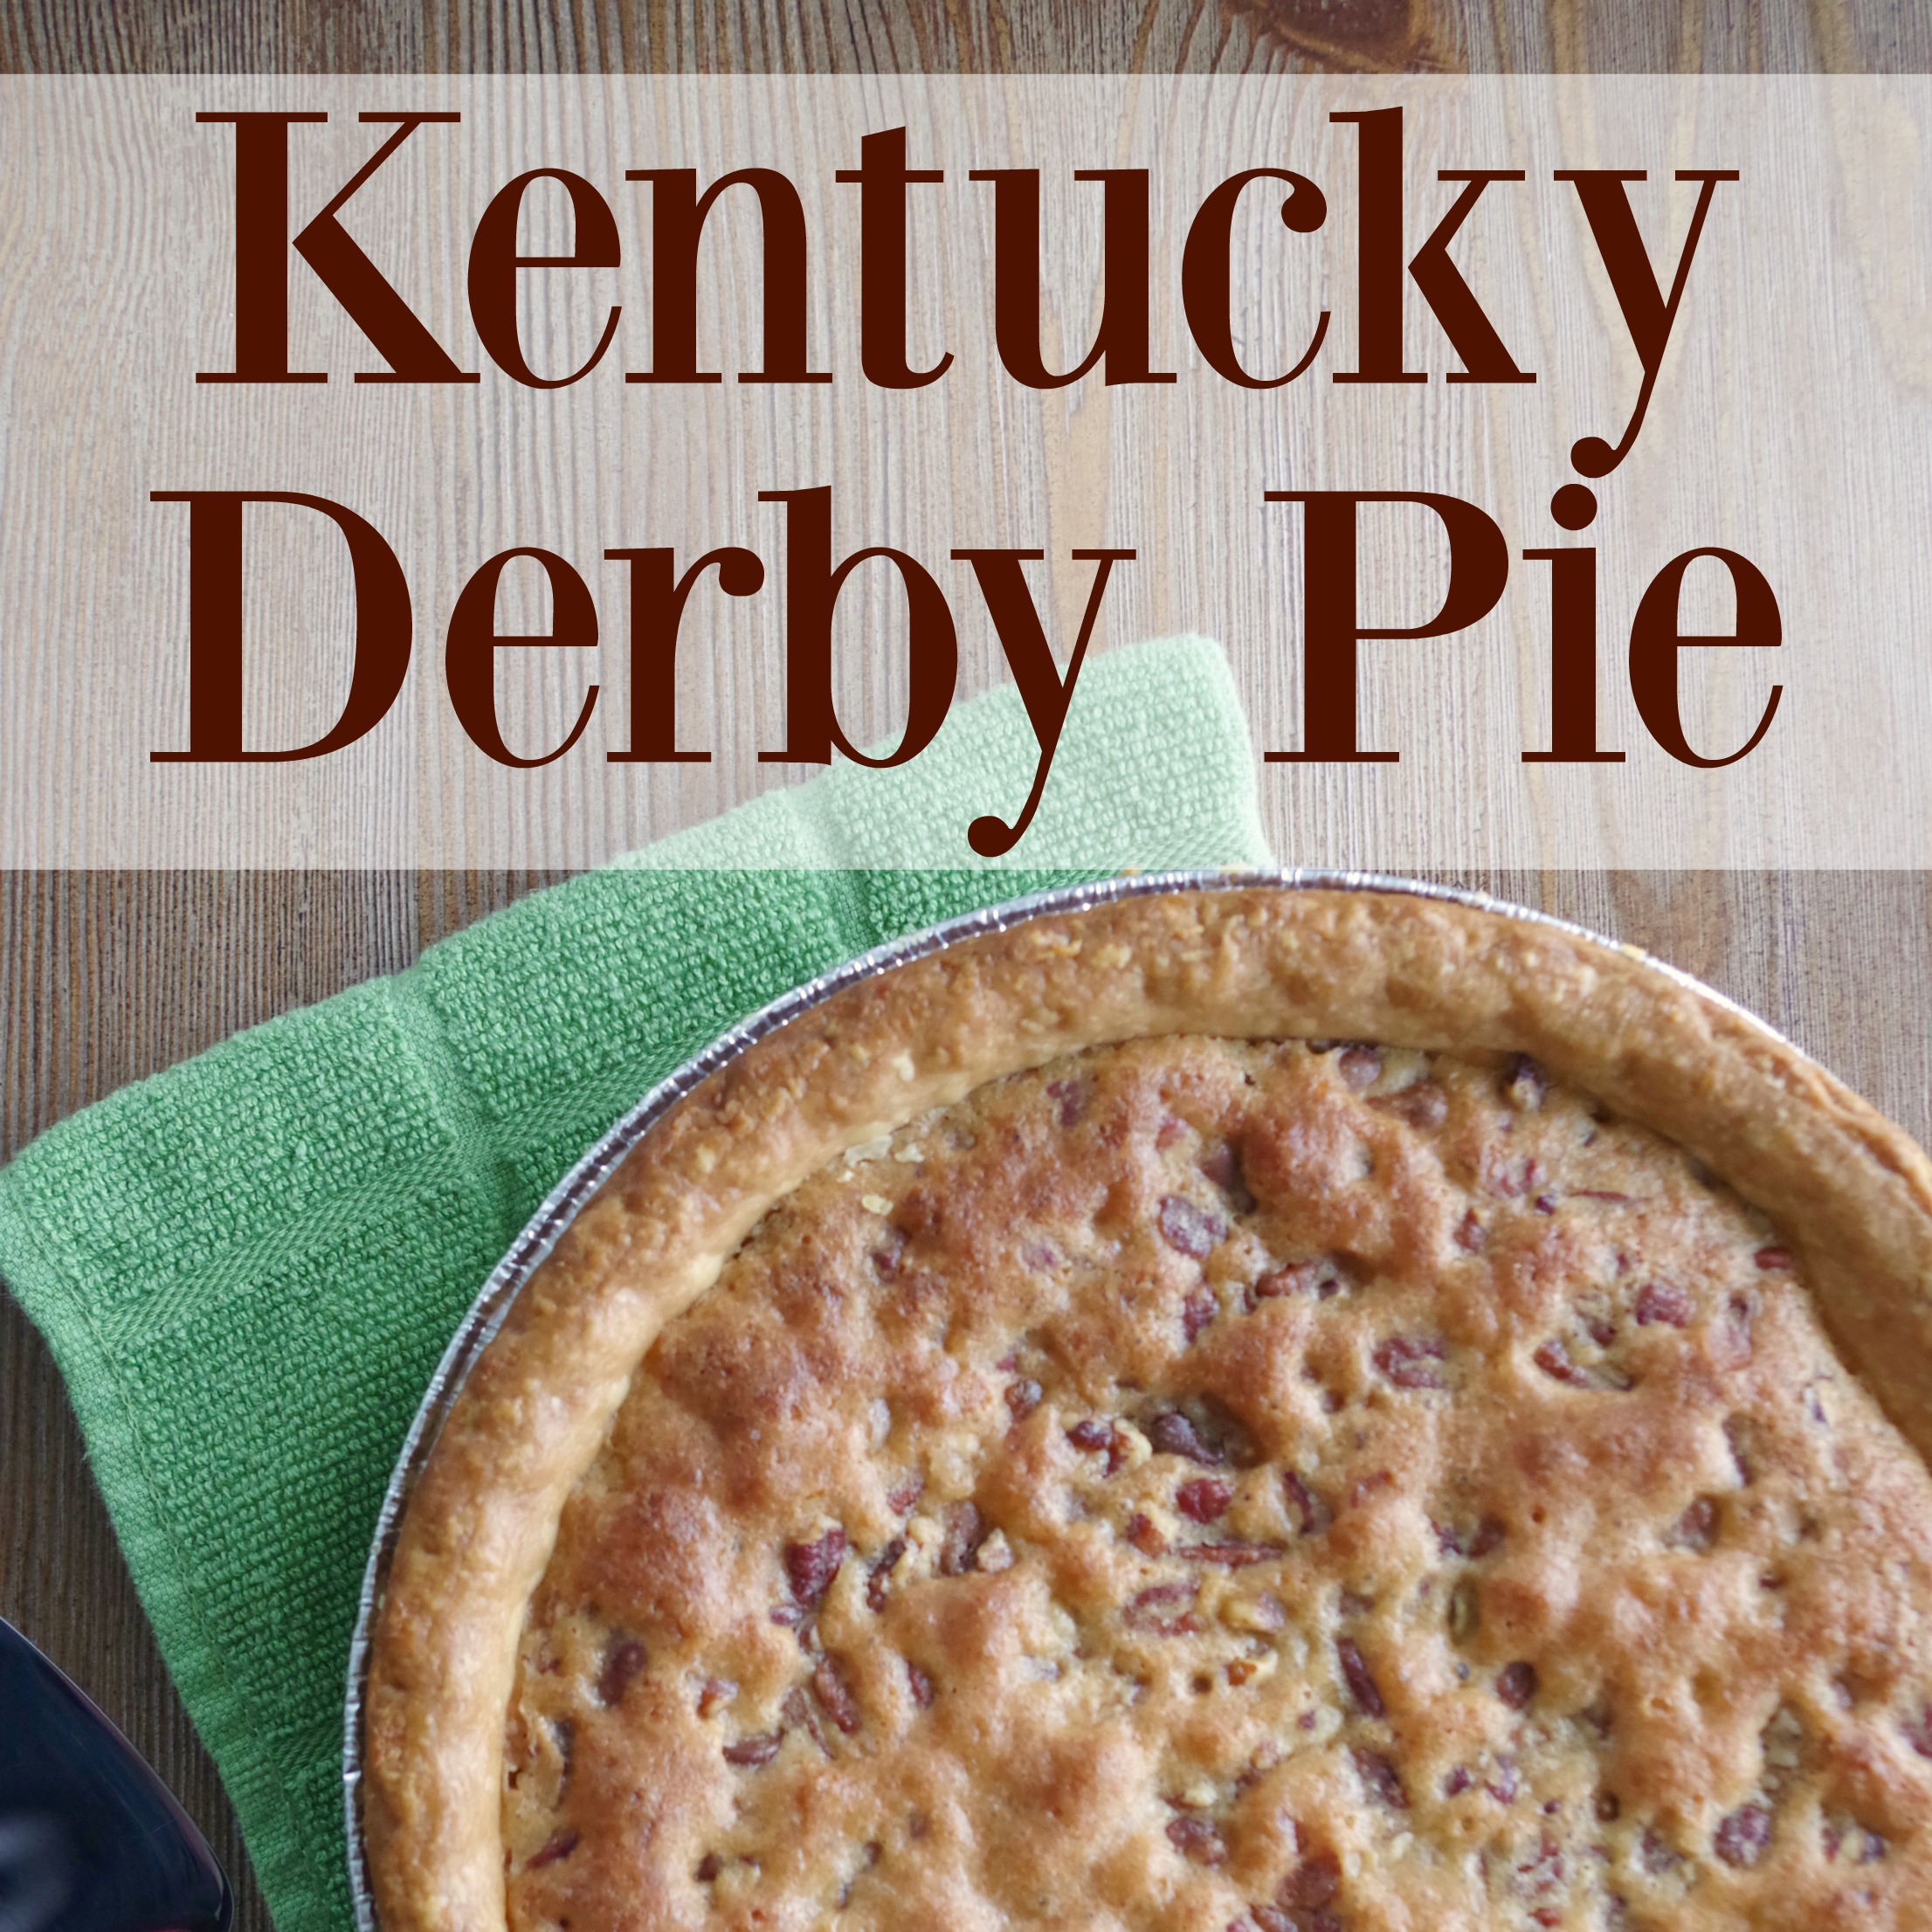 Kentucky derby pie graceful little honey bee recipe image forumfinder Image collections